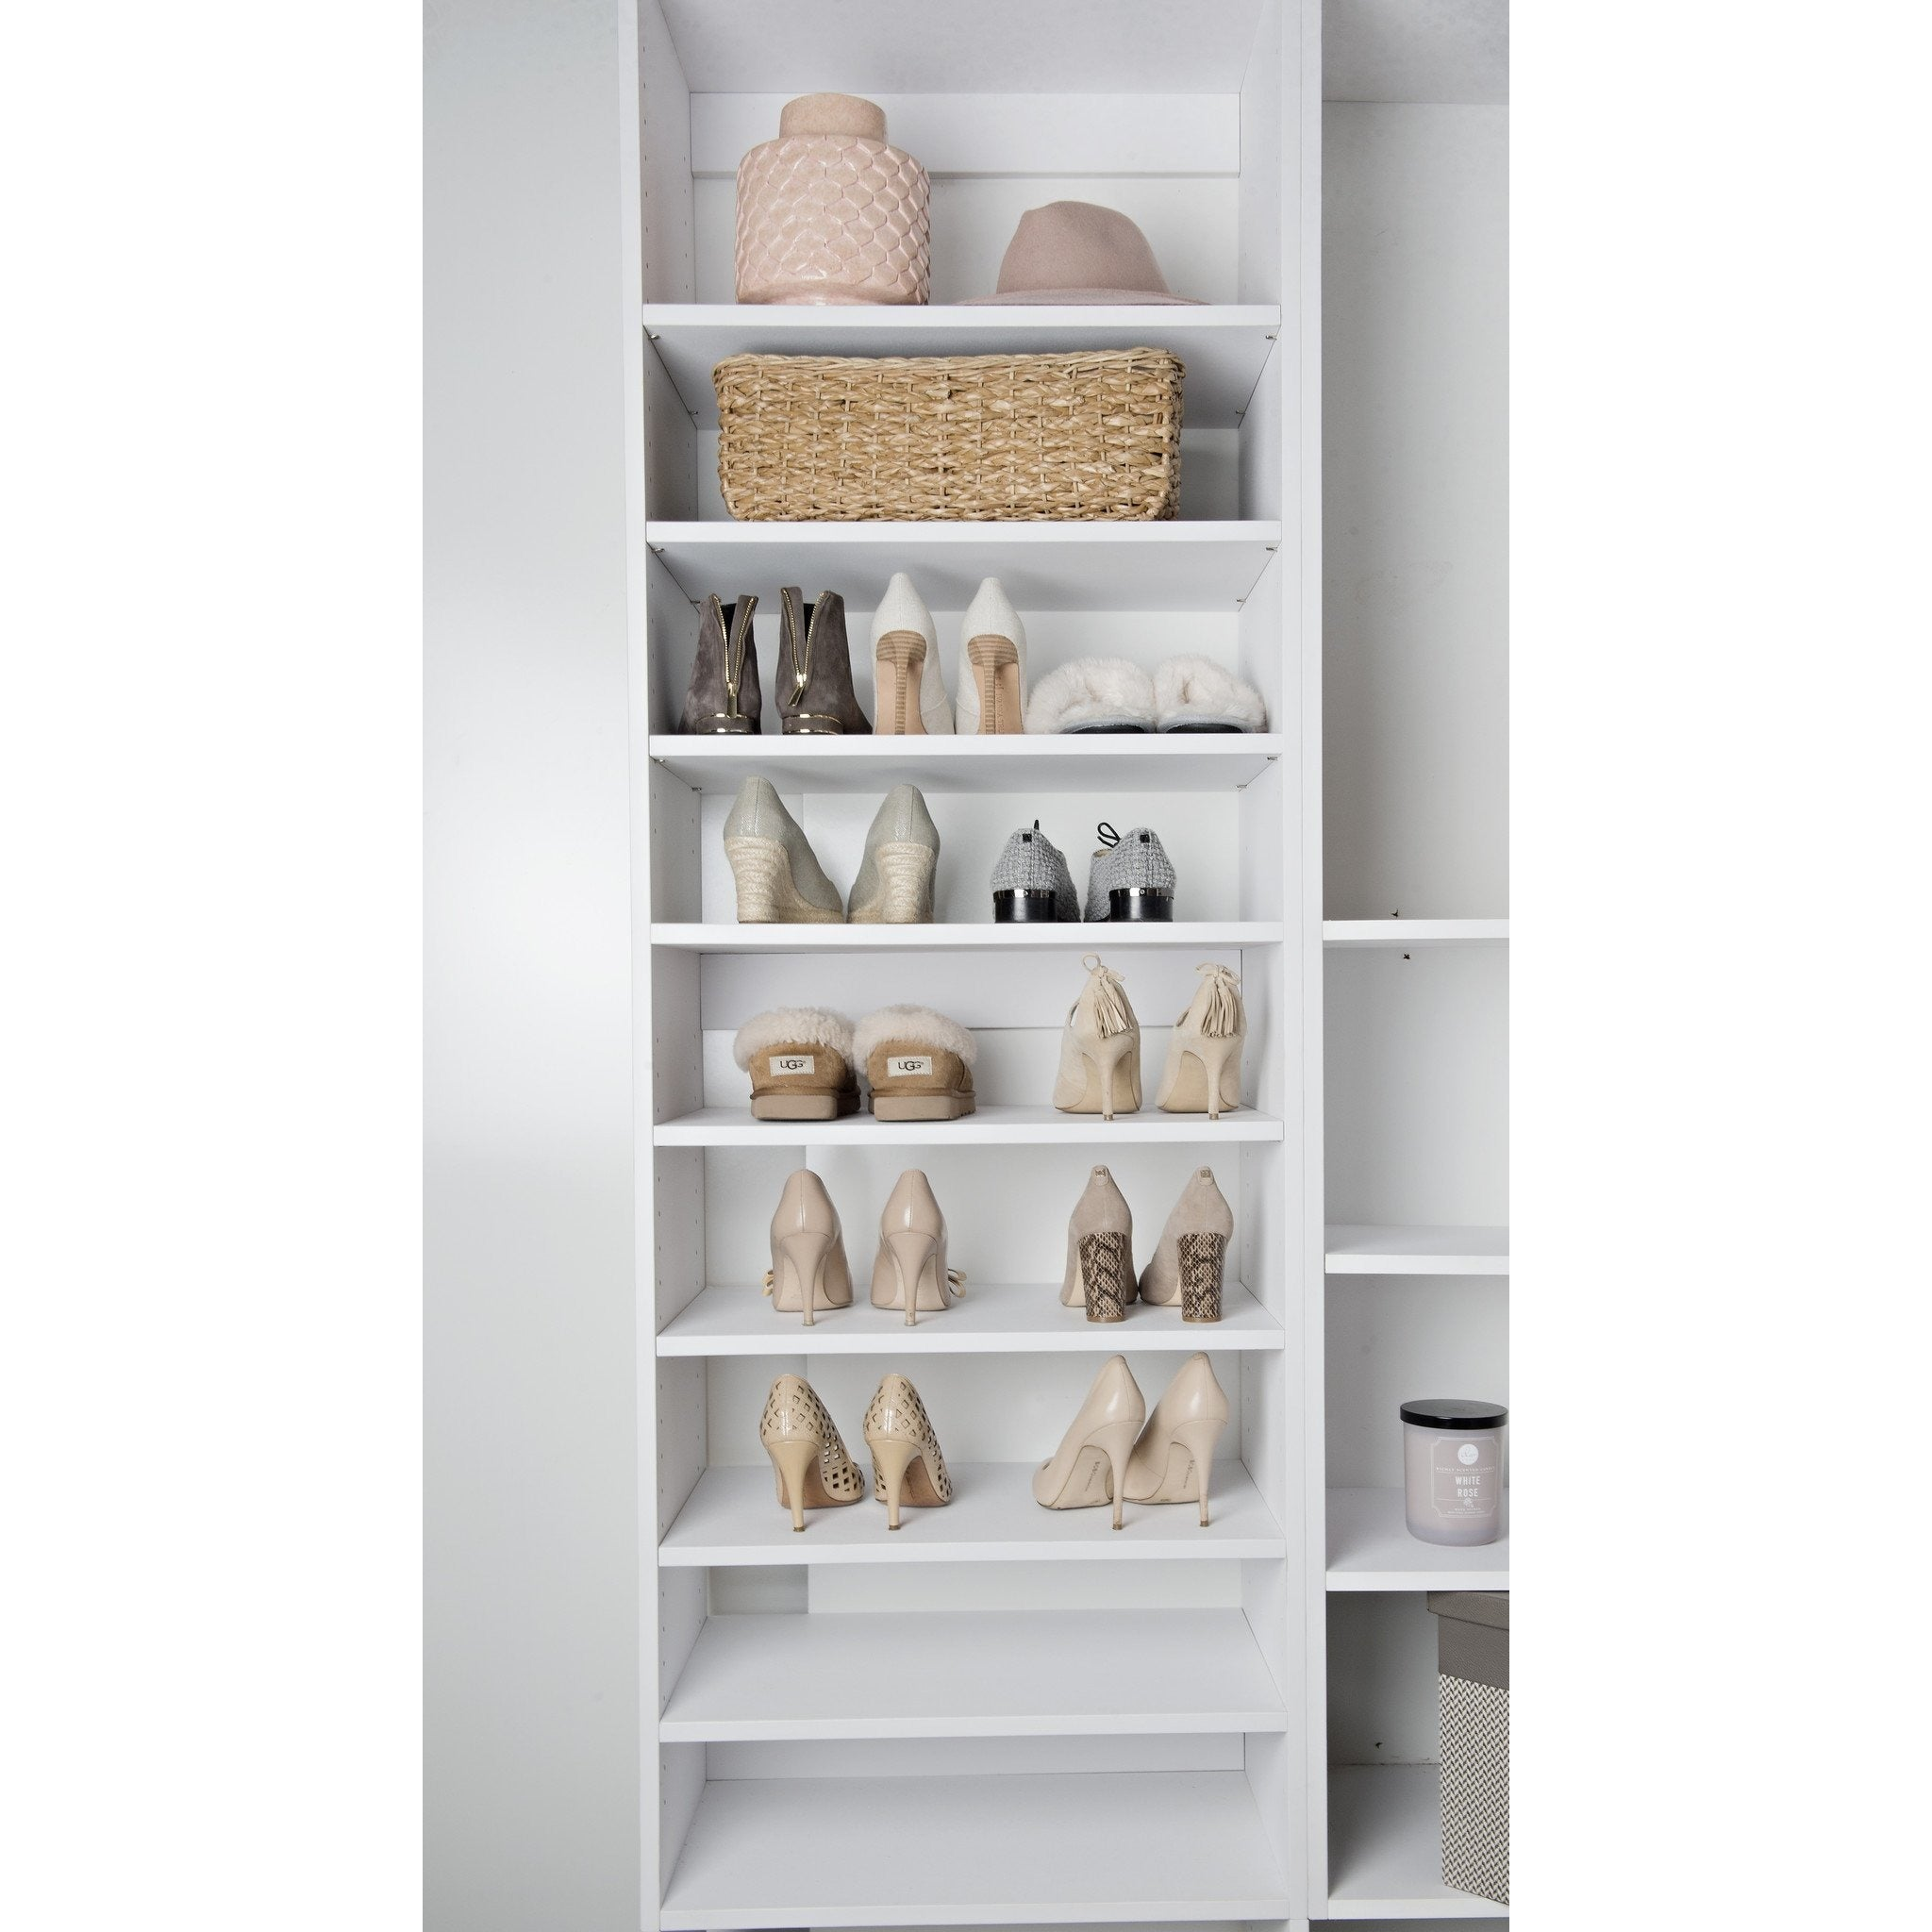 in pictures closet reach optimized by and walk design example a of closets etc